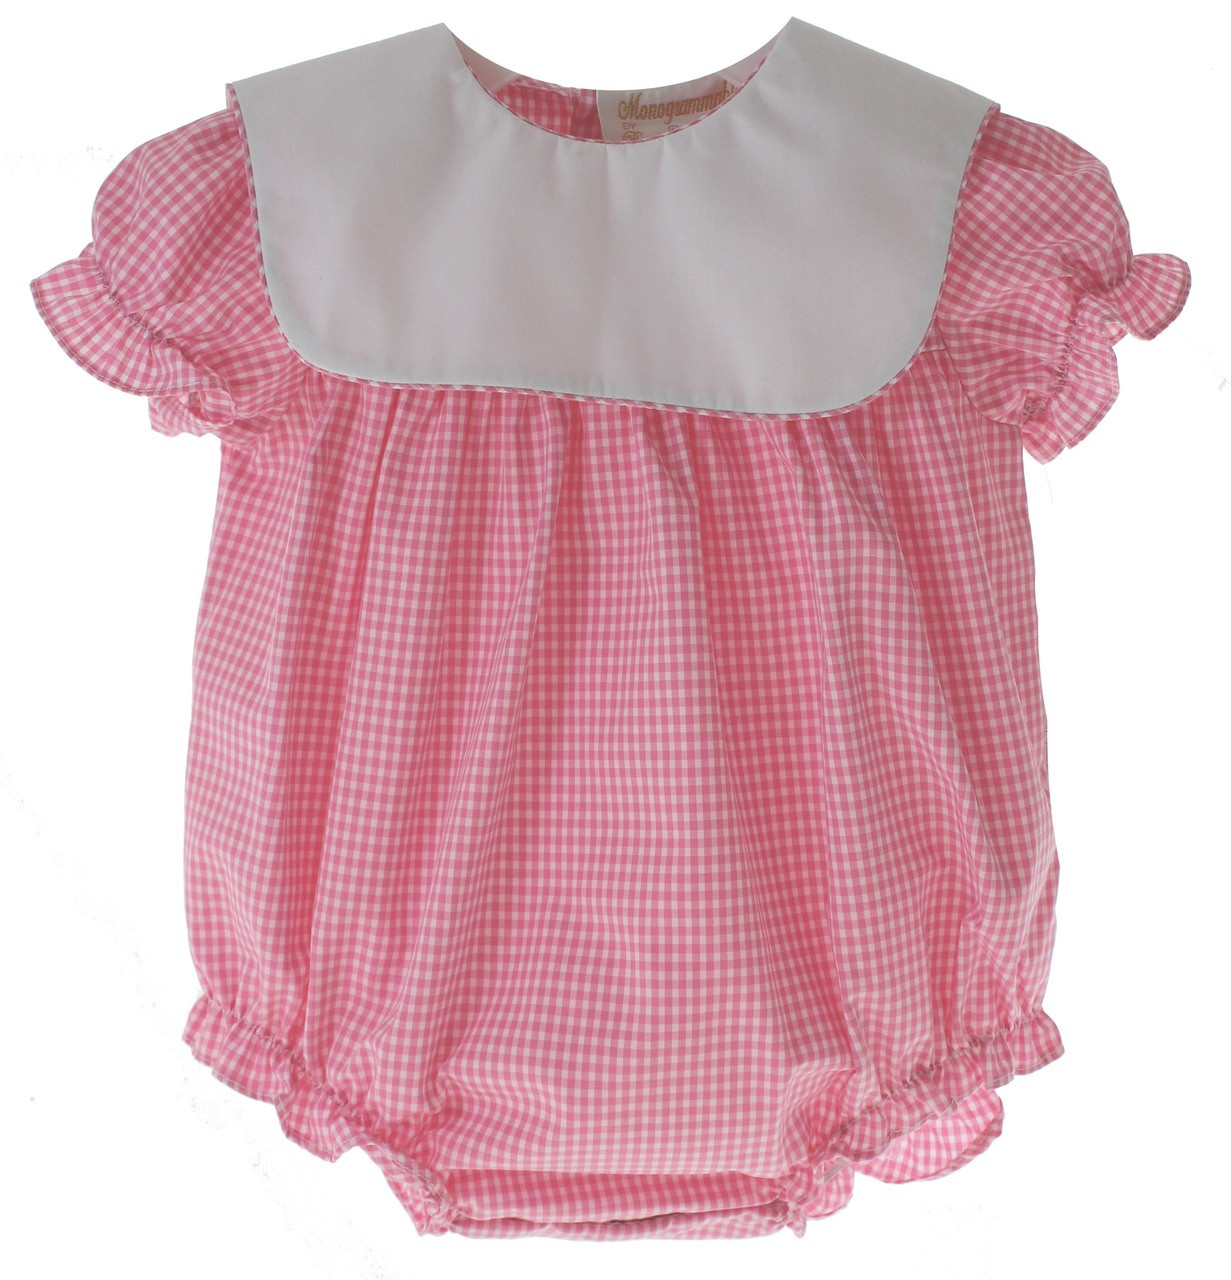 b9e0a87cd1d5 Baby Girls Pink Gingham Monogrammed bubble Outfit. See 1 more picture